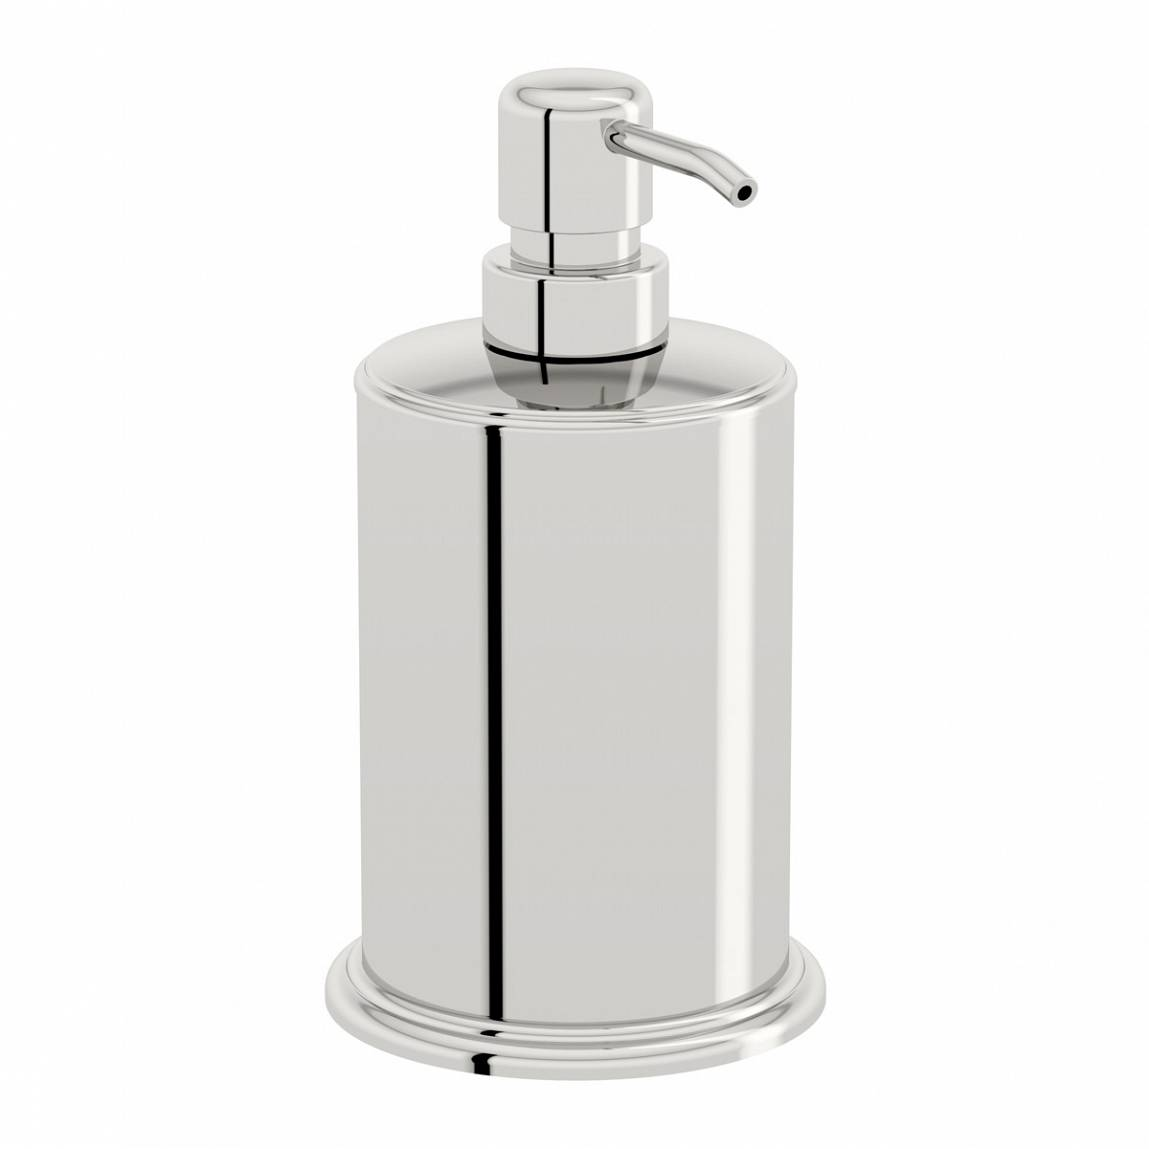 Metal Soap Dispenser Pump Options Freestanding Stainless Steel Soap Dispenser